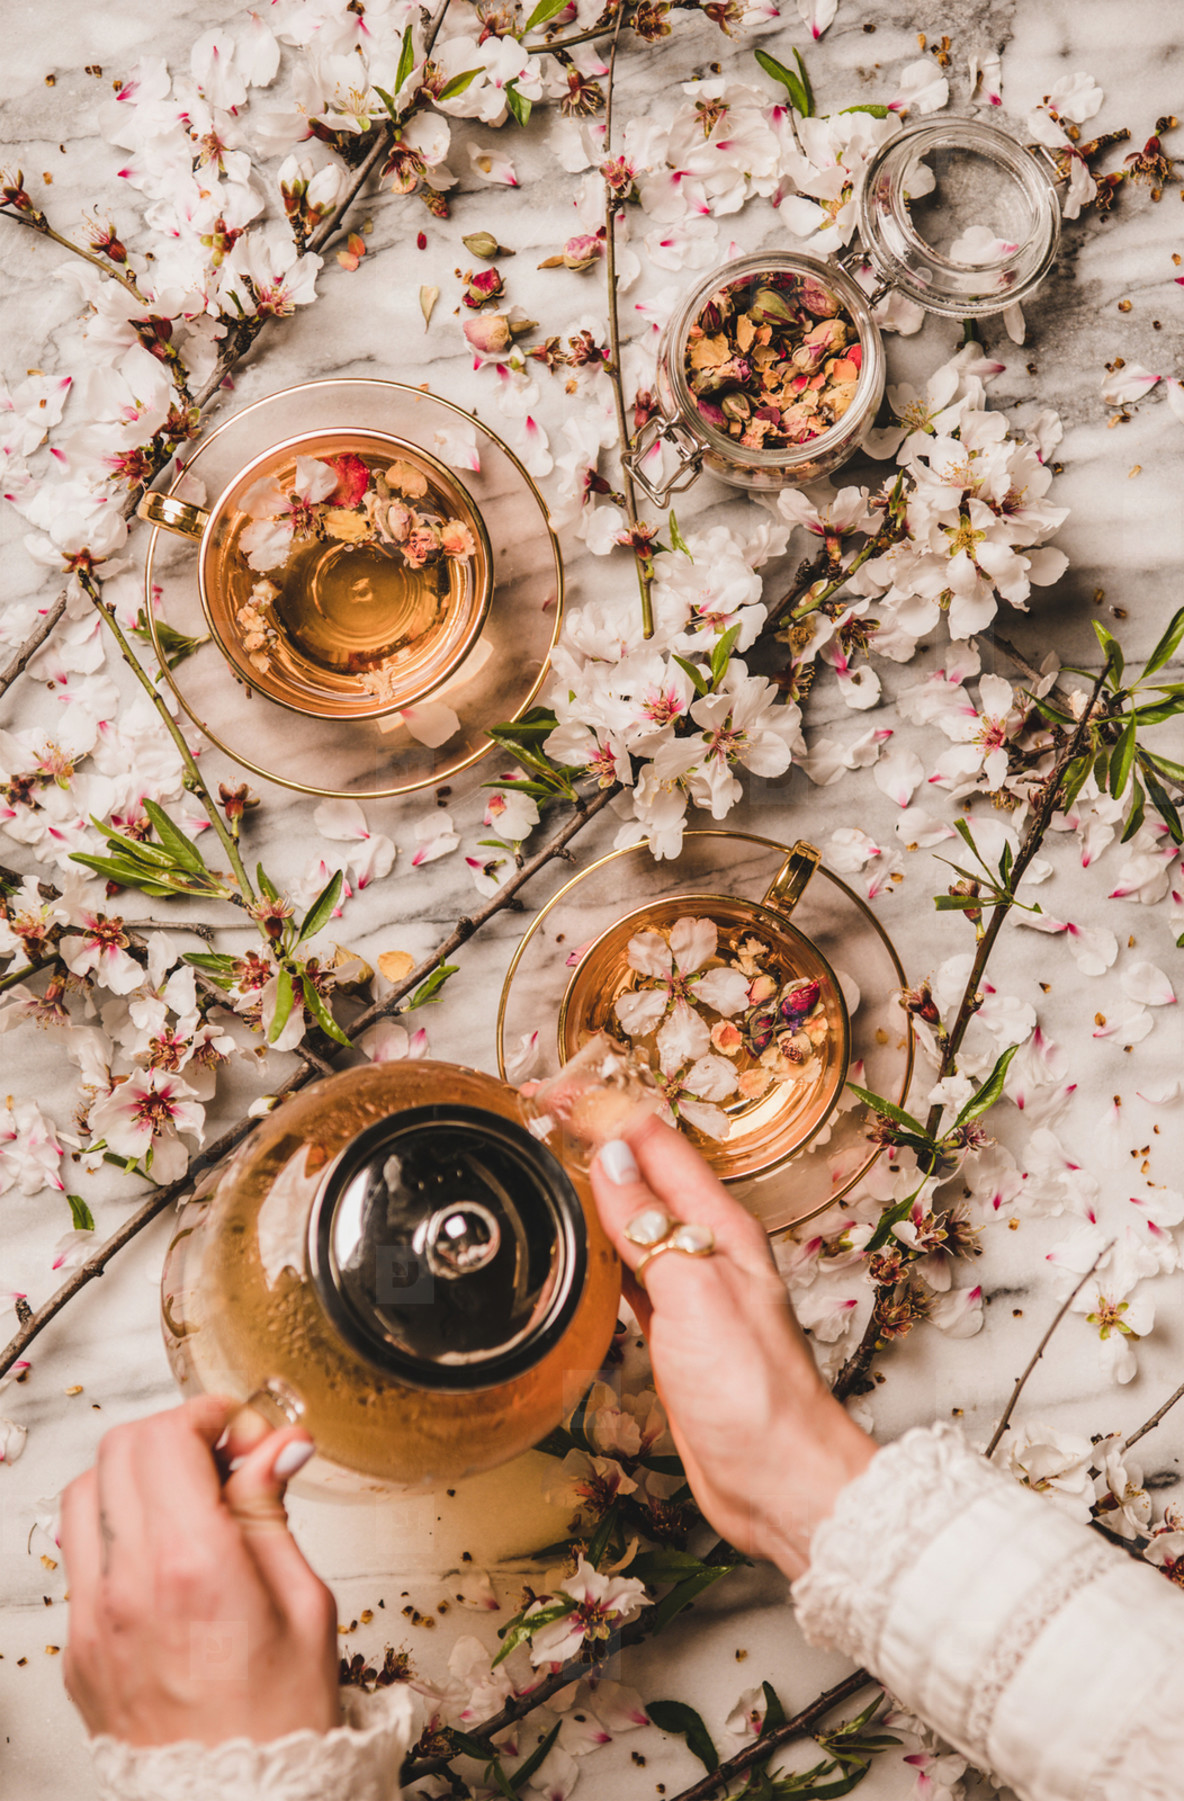 Female hands holding teapot with black tea over blossom flowers